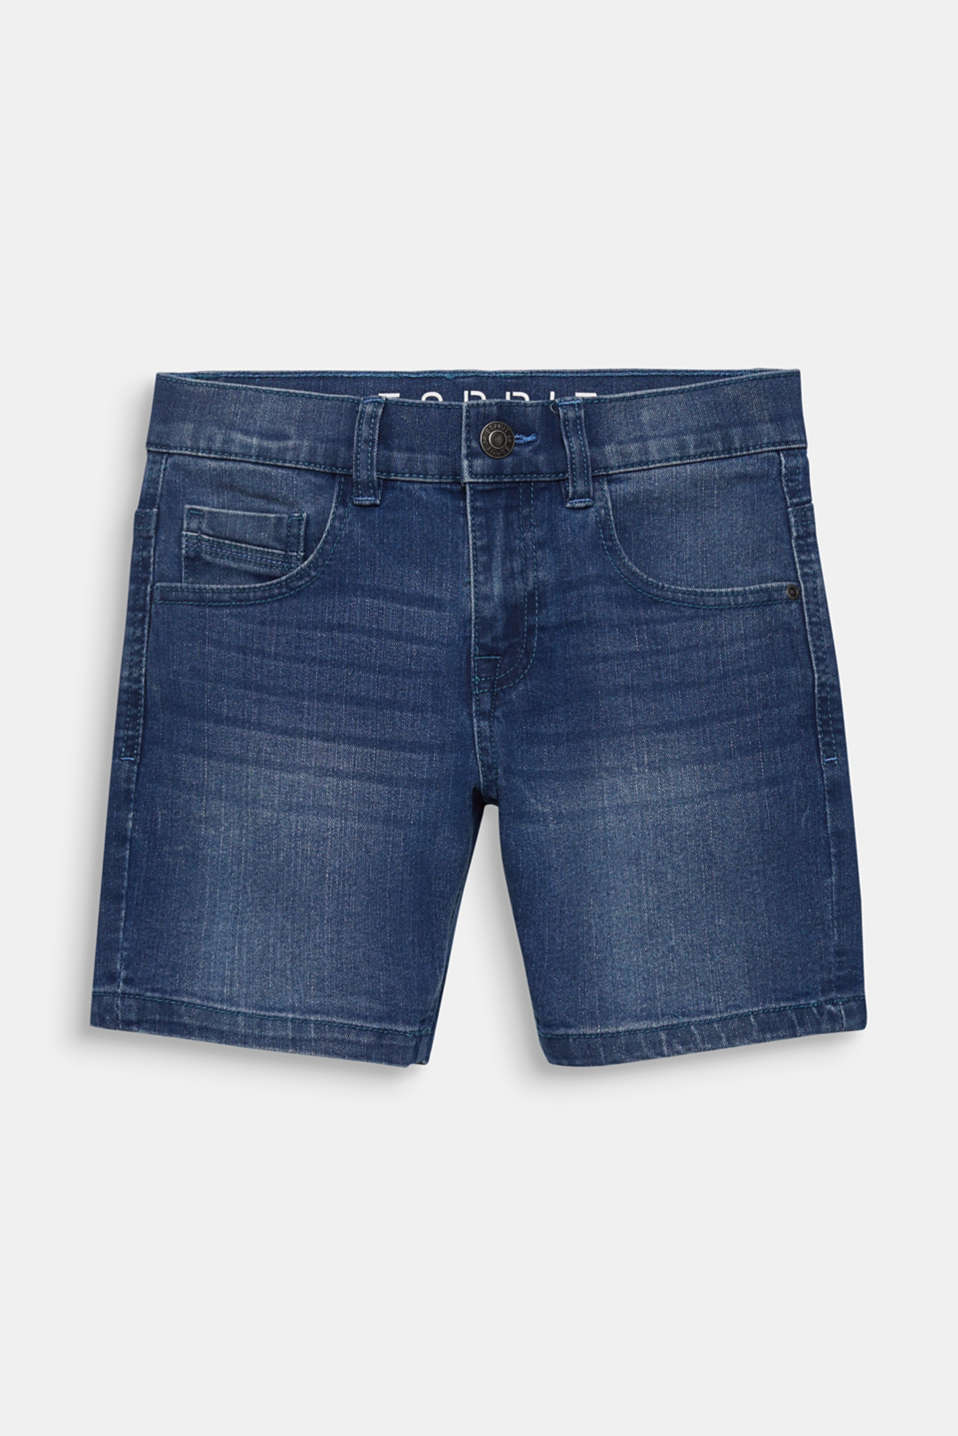 Esprit - Denim-Shorts mit Stretchkomfort,Verstellbund